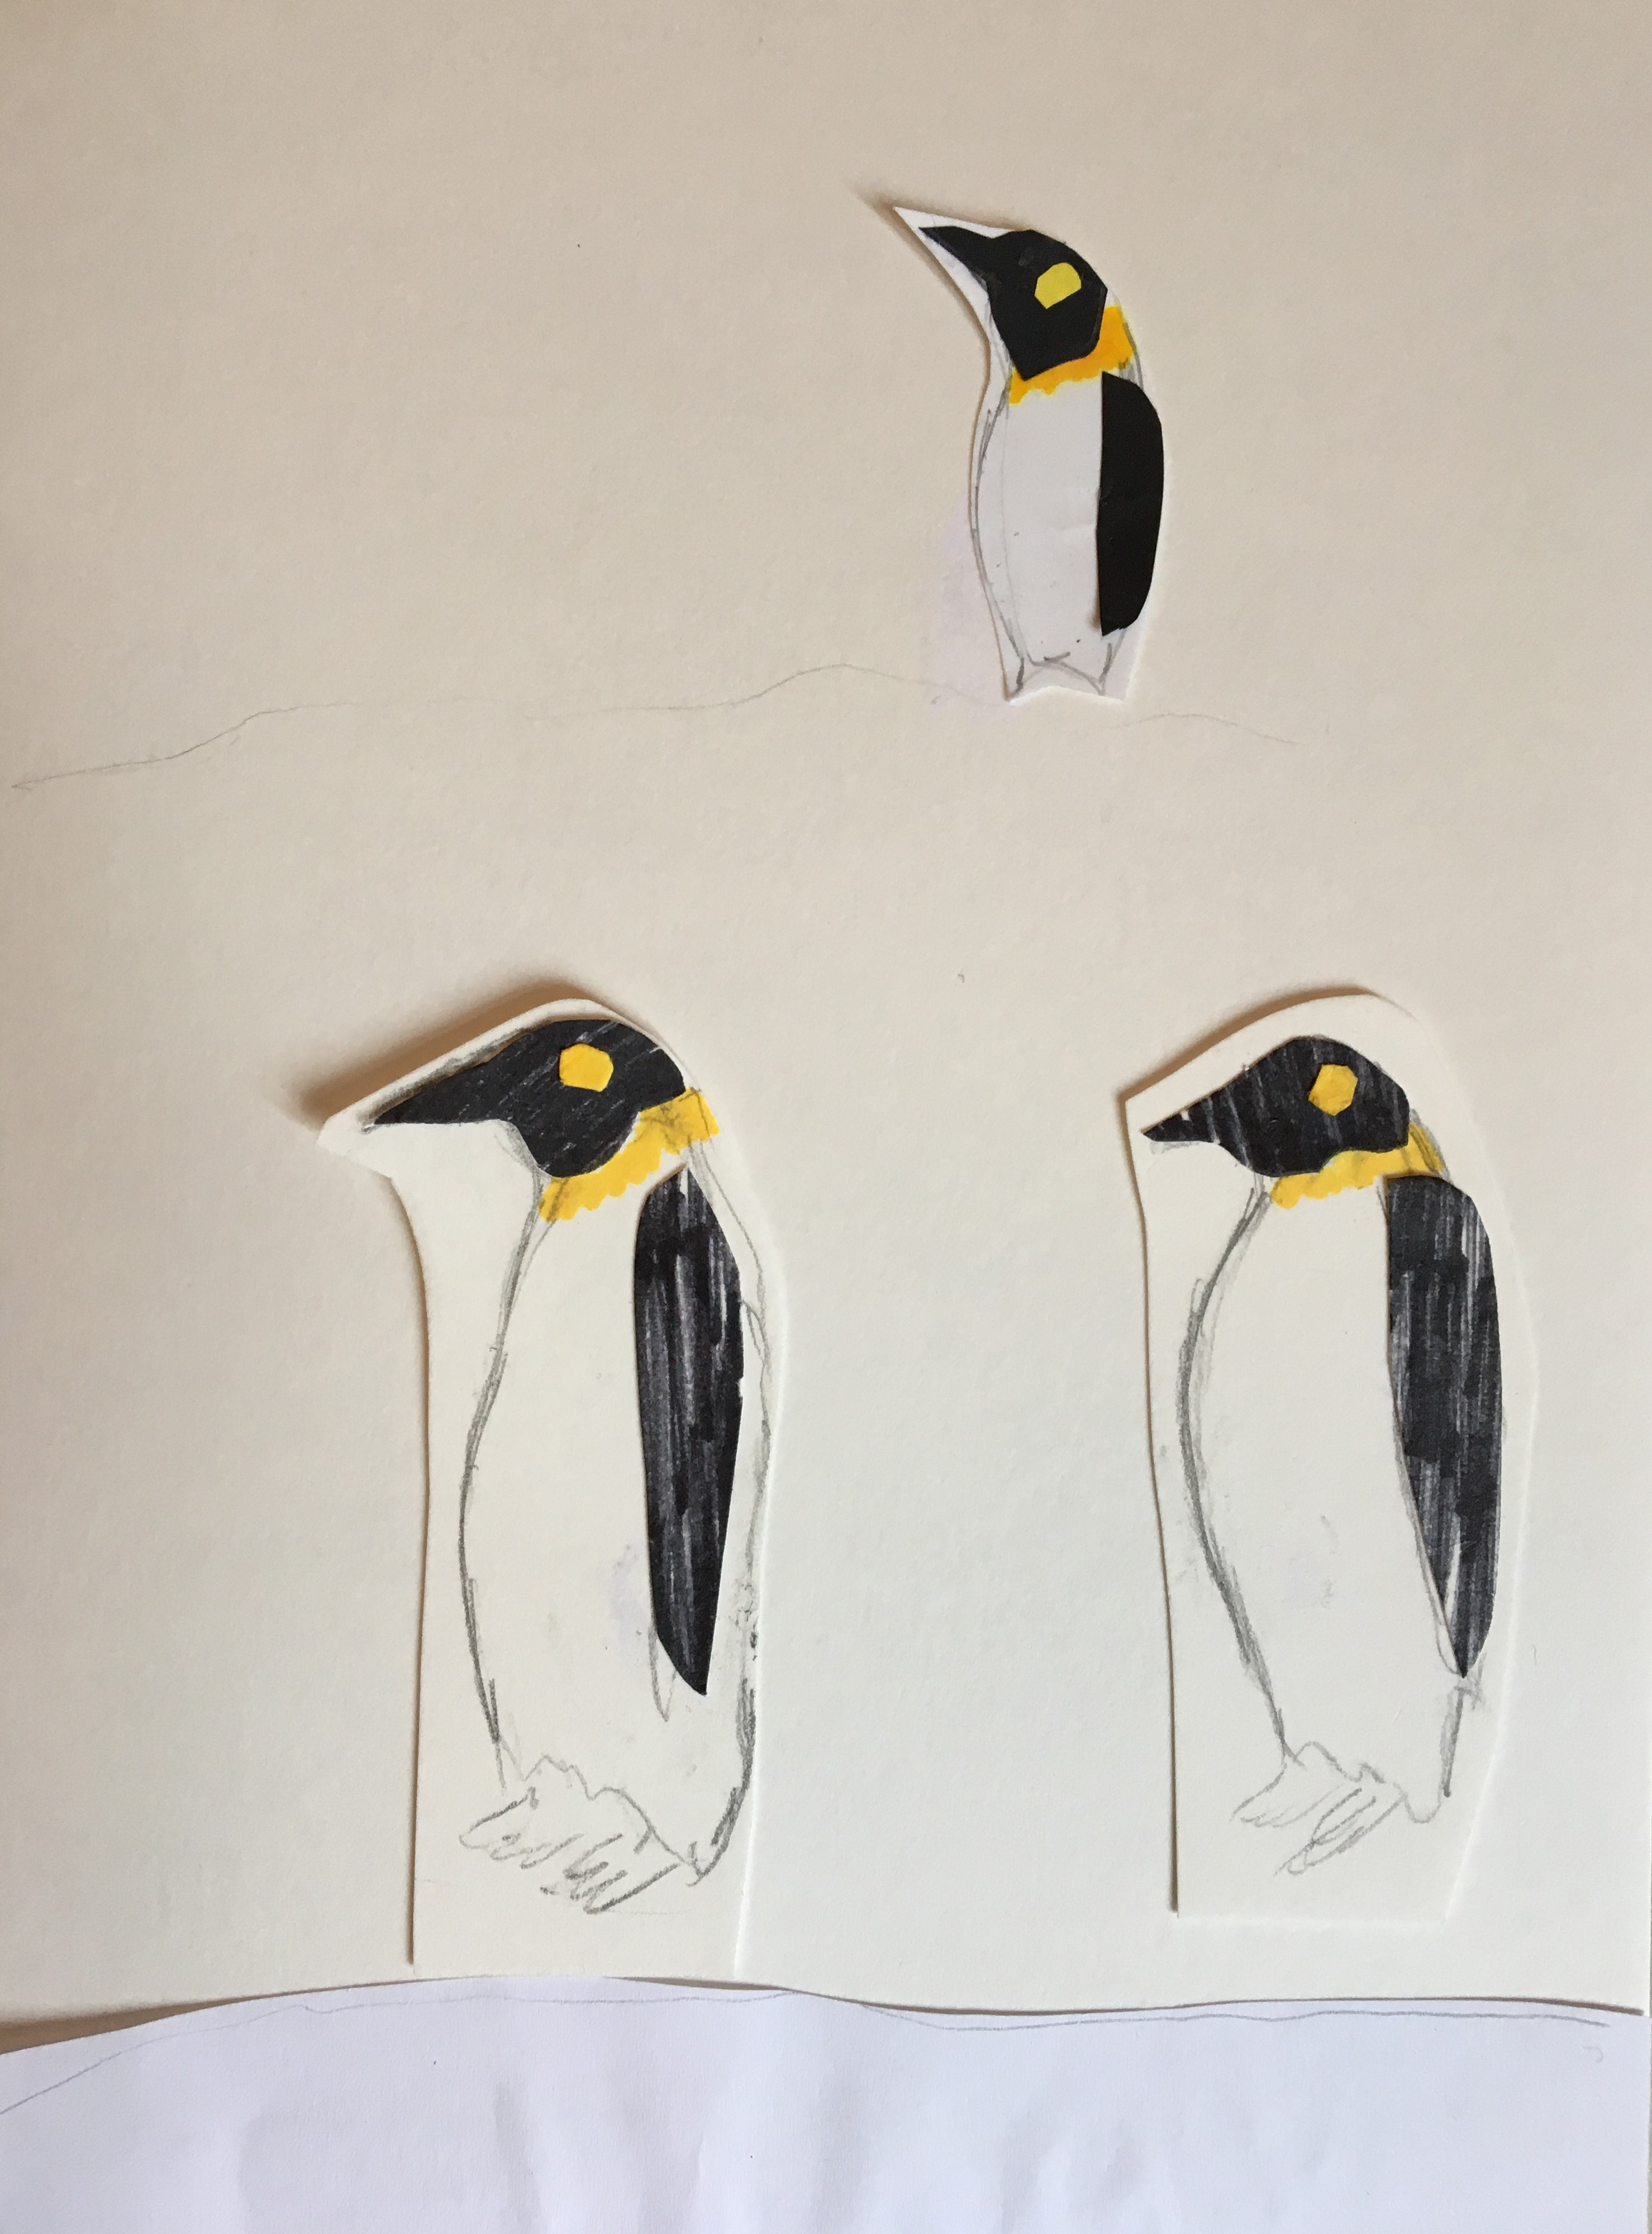 3 cut out drawings of penguins